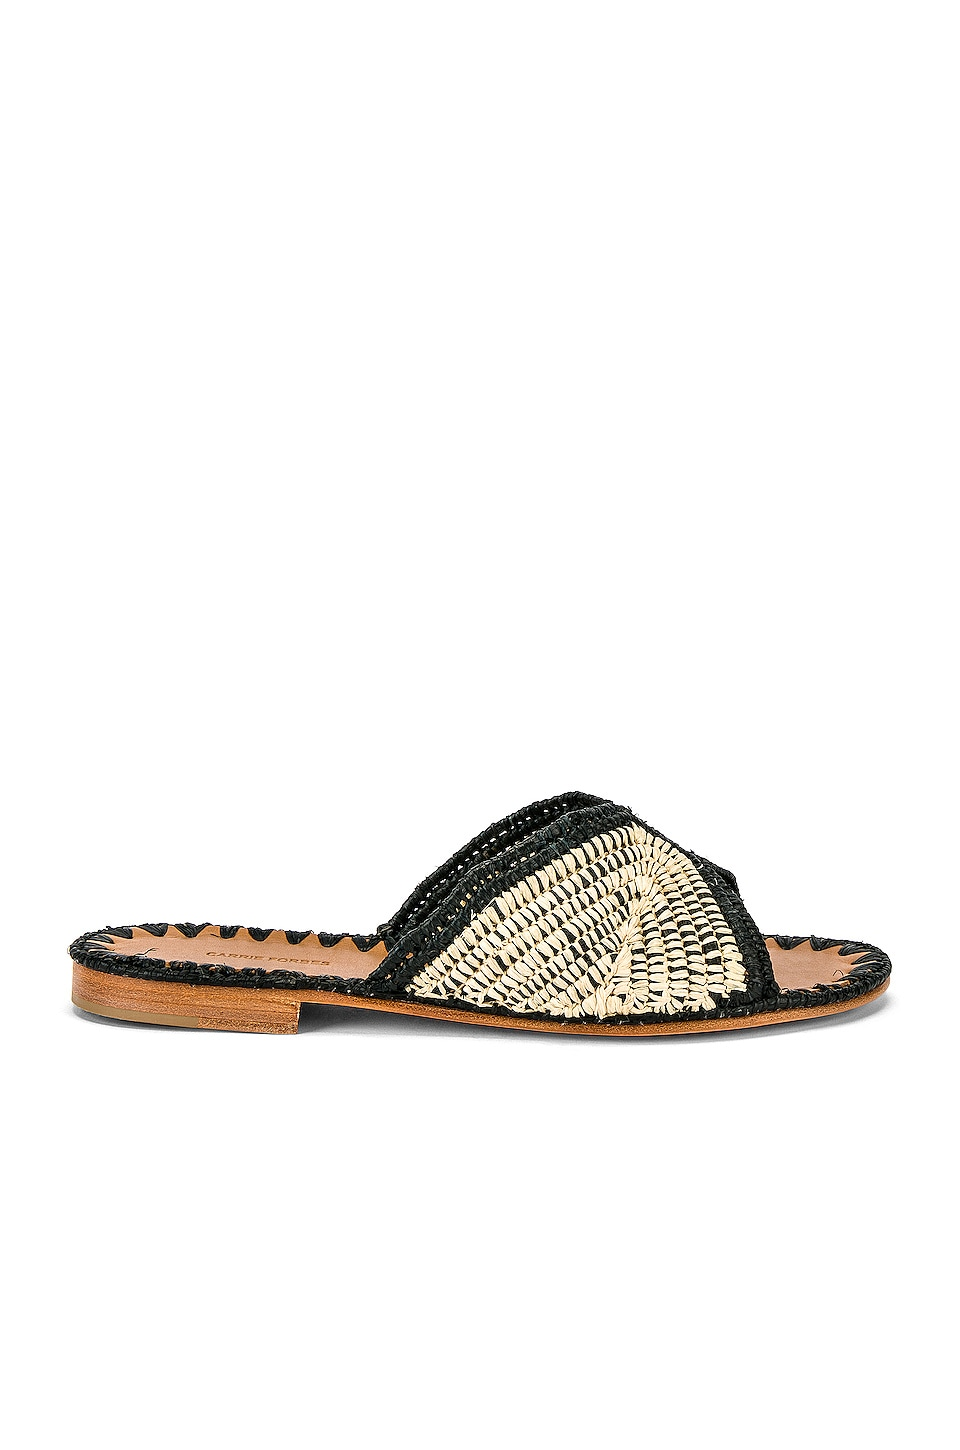 Carrie Forbes Salon Miste Sandal in Noir & Natural